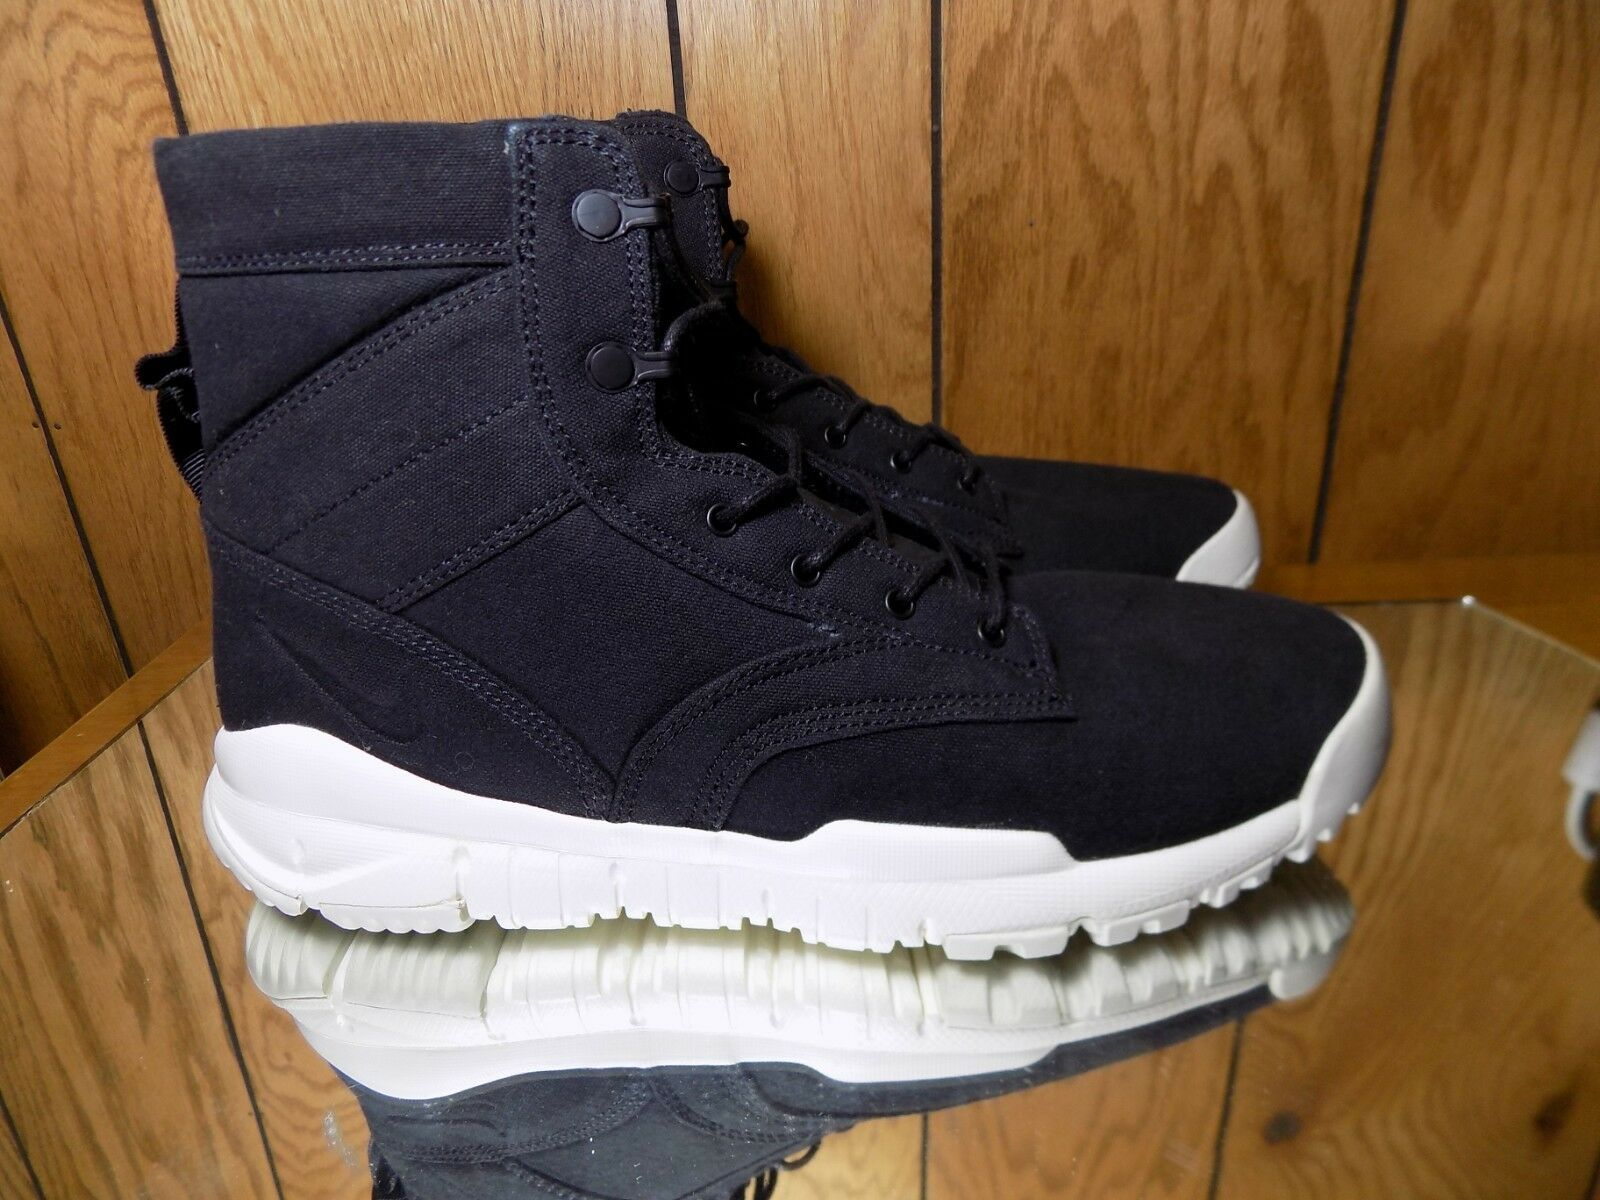 NIKE SFB 6  CANVAS NSW NSW NSW BOOTS MENS 13 NEW 844577-001 BLACK WHITE 175e5f